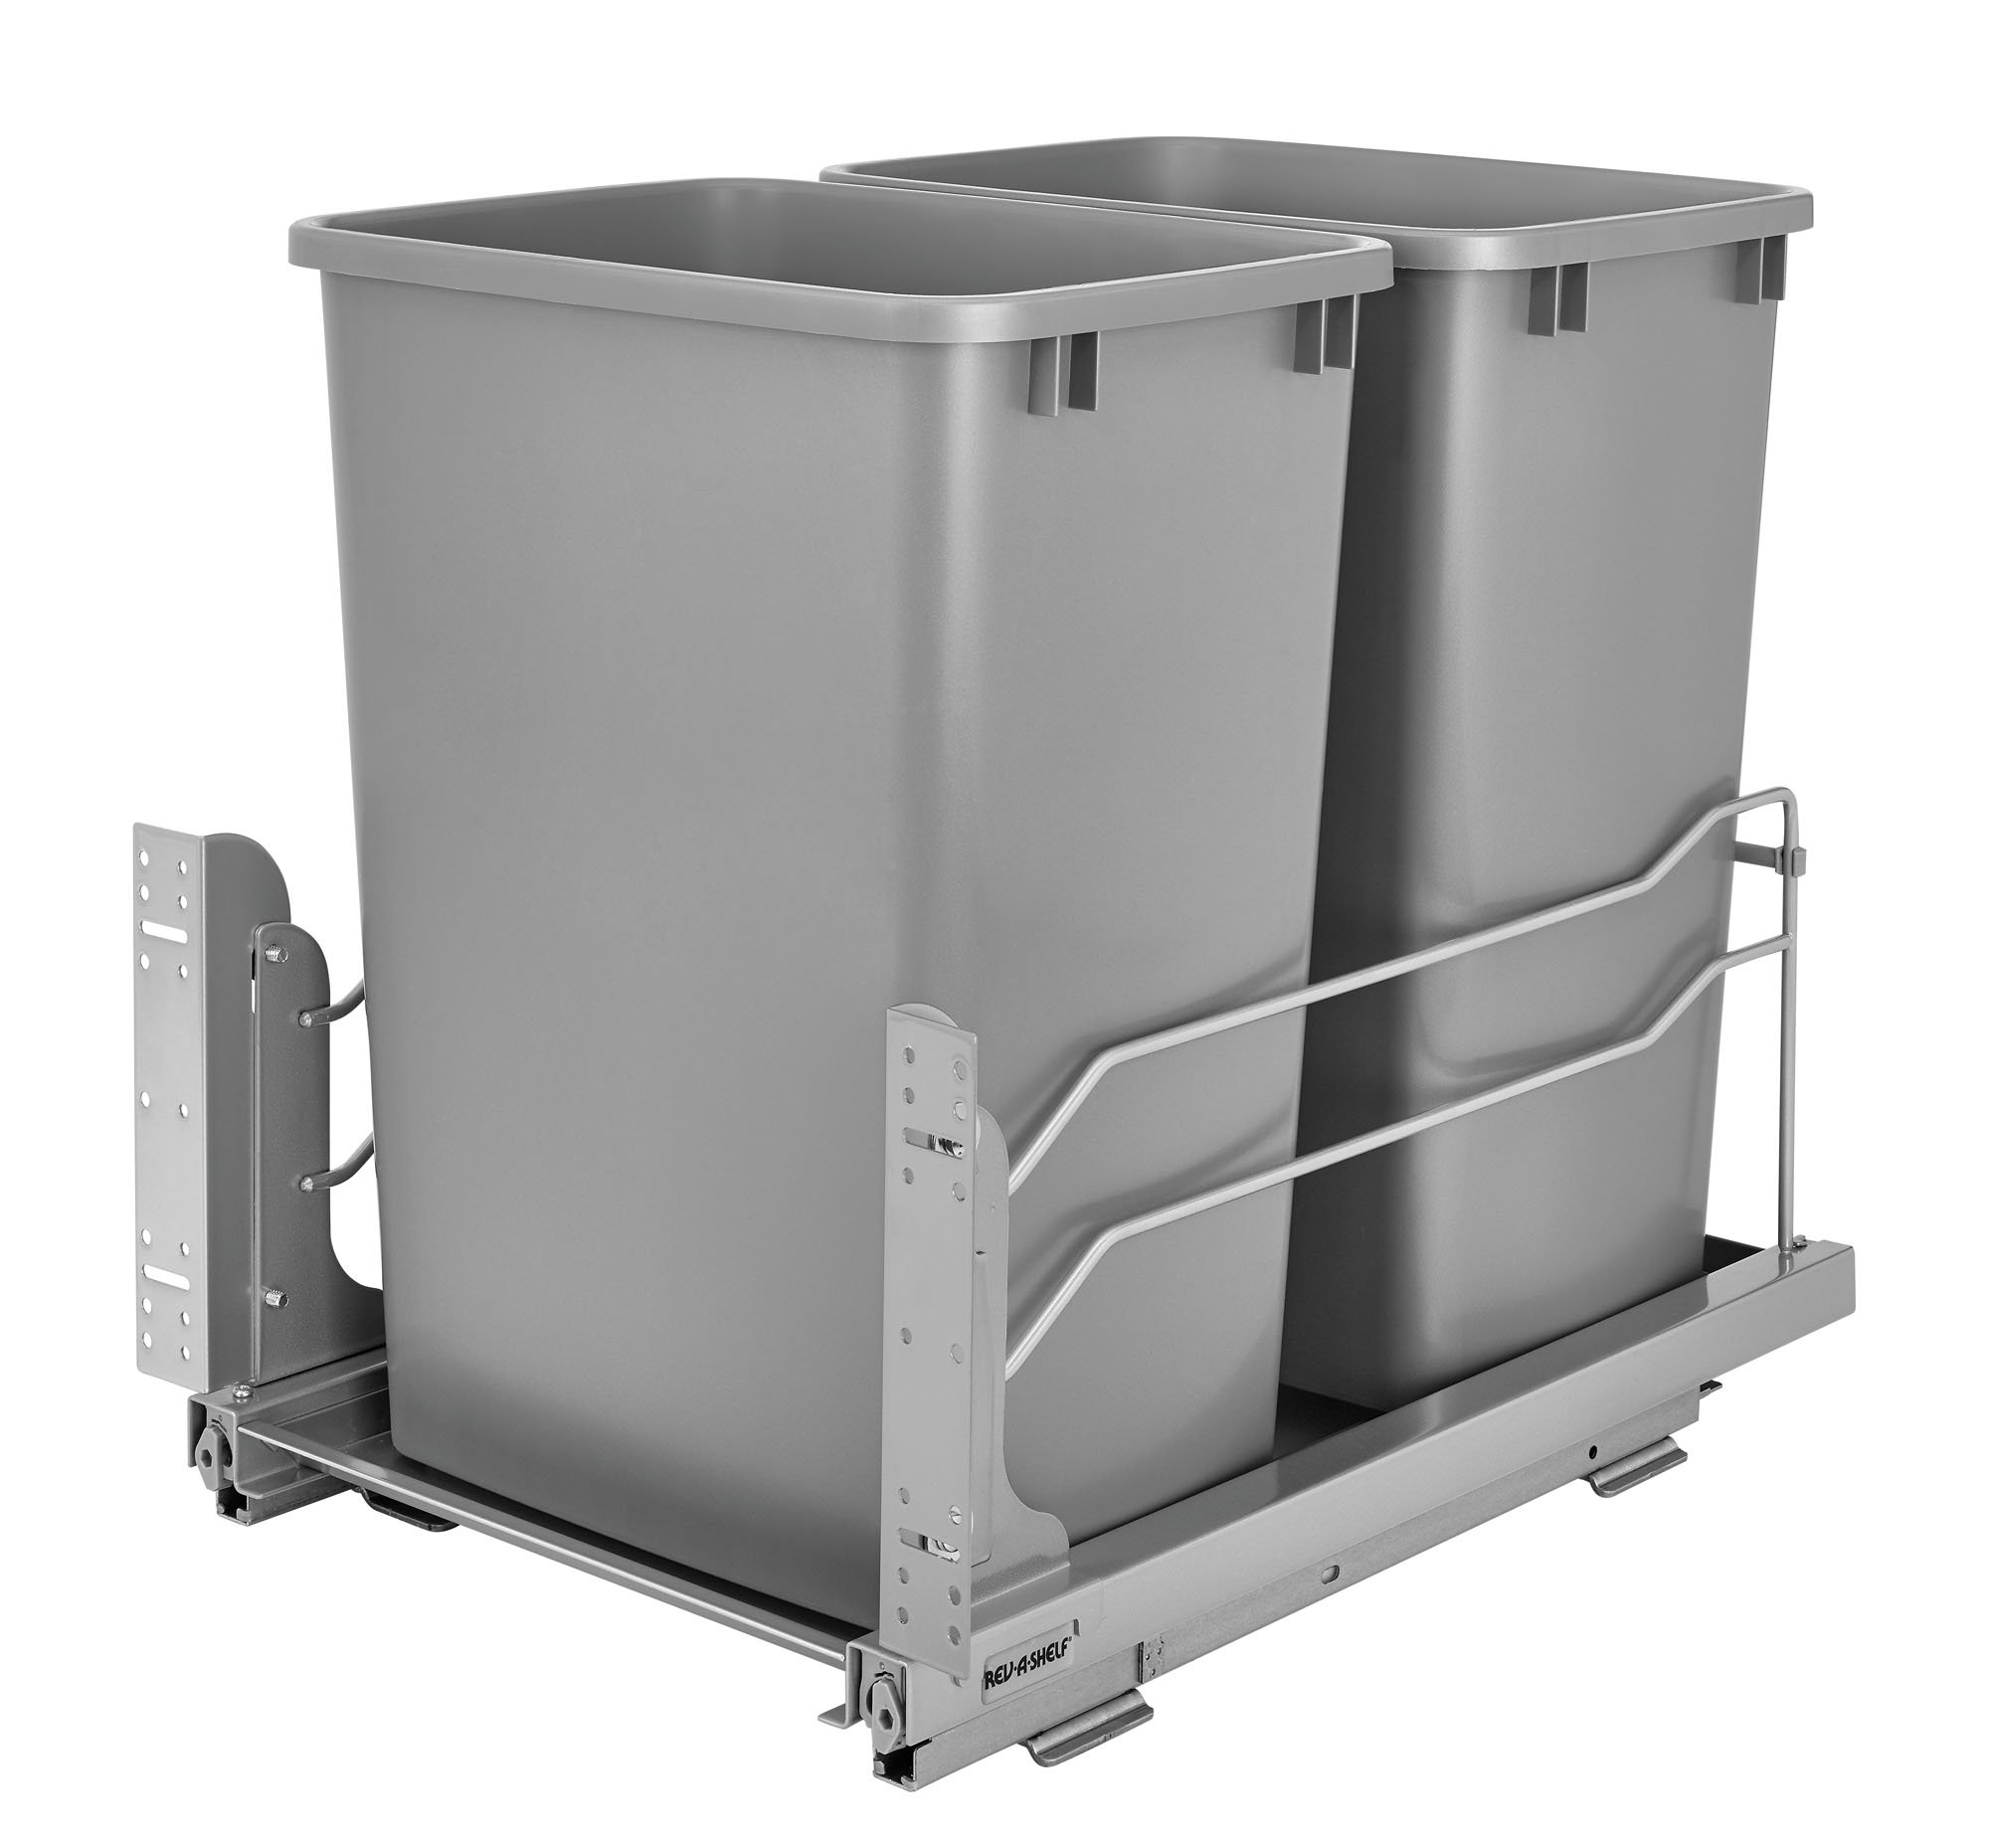 Rev-A-Shelf - 53WC-1835SCDM-217 - Double 35 Qt. Pull-Out Silver Waste Container with Soft-Close Slides by Rev-A-Shelf